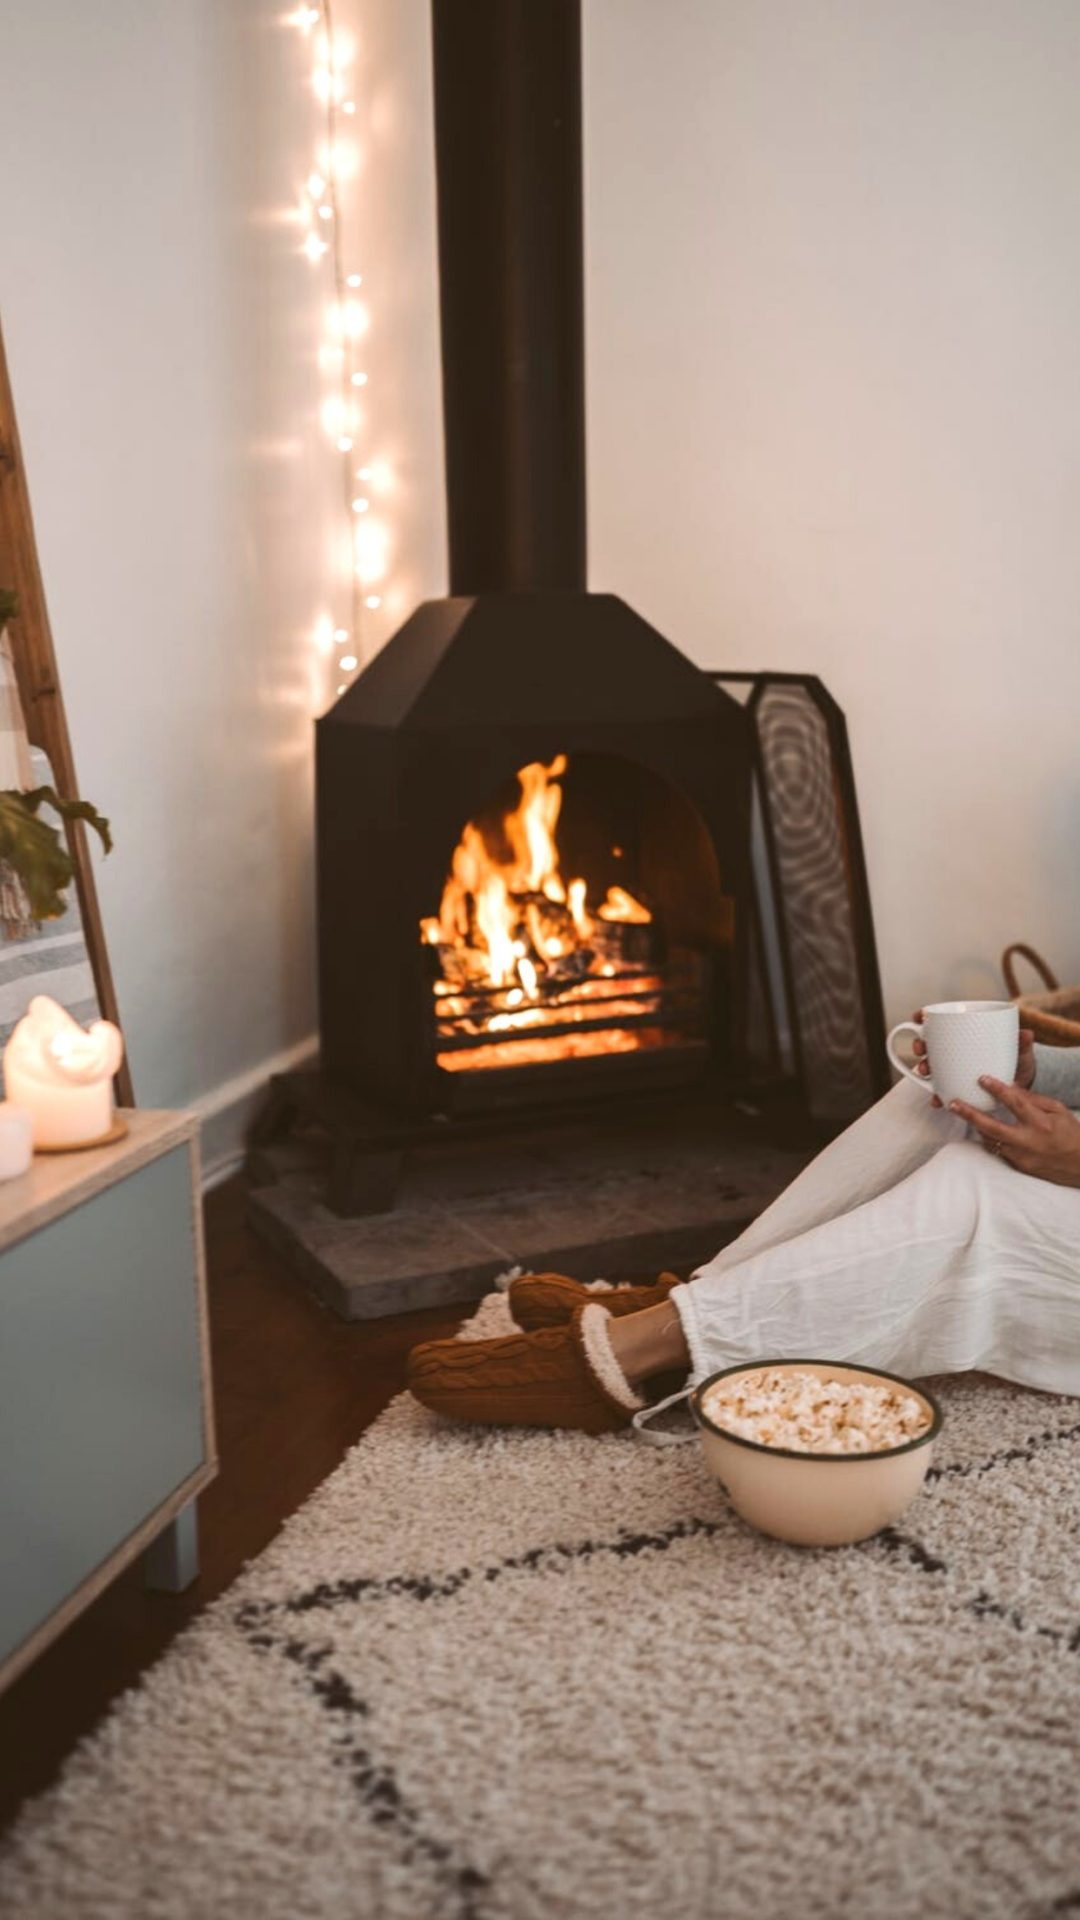 Cozy winter wallpaper with fireplace